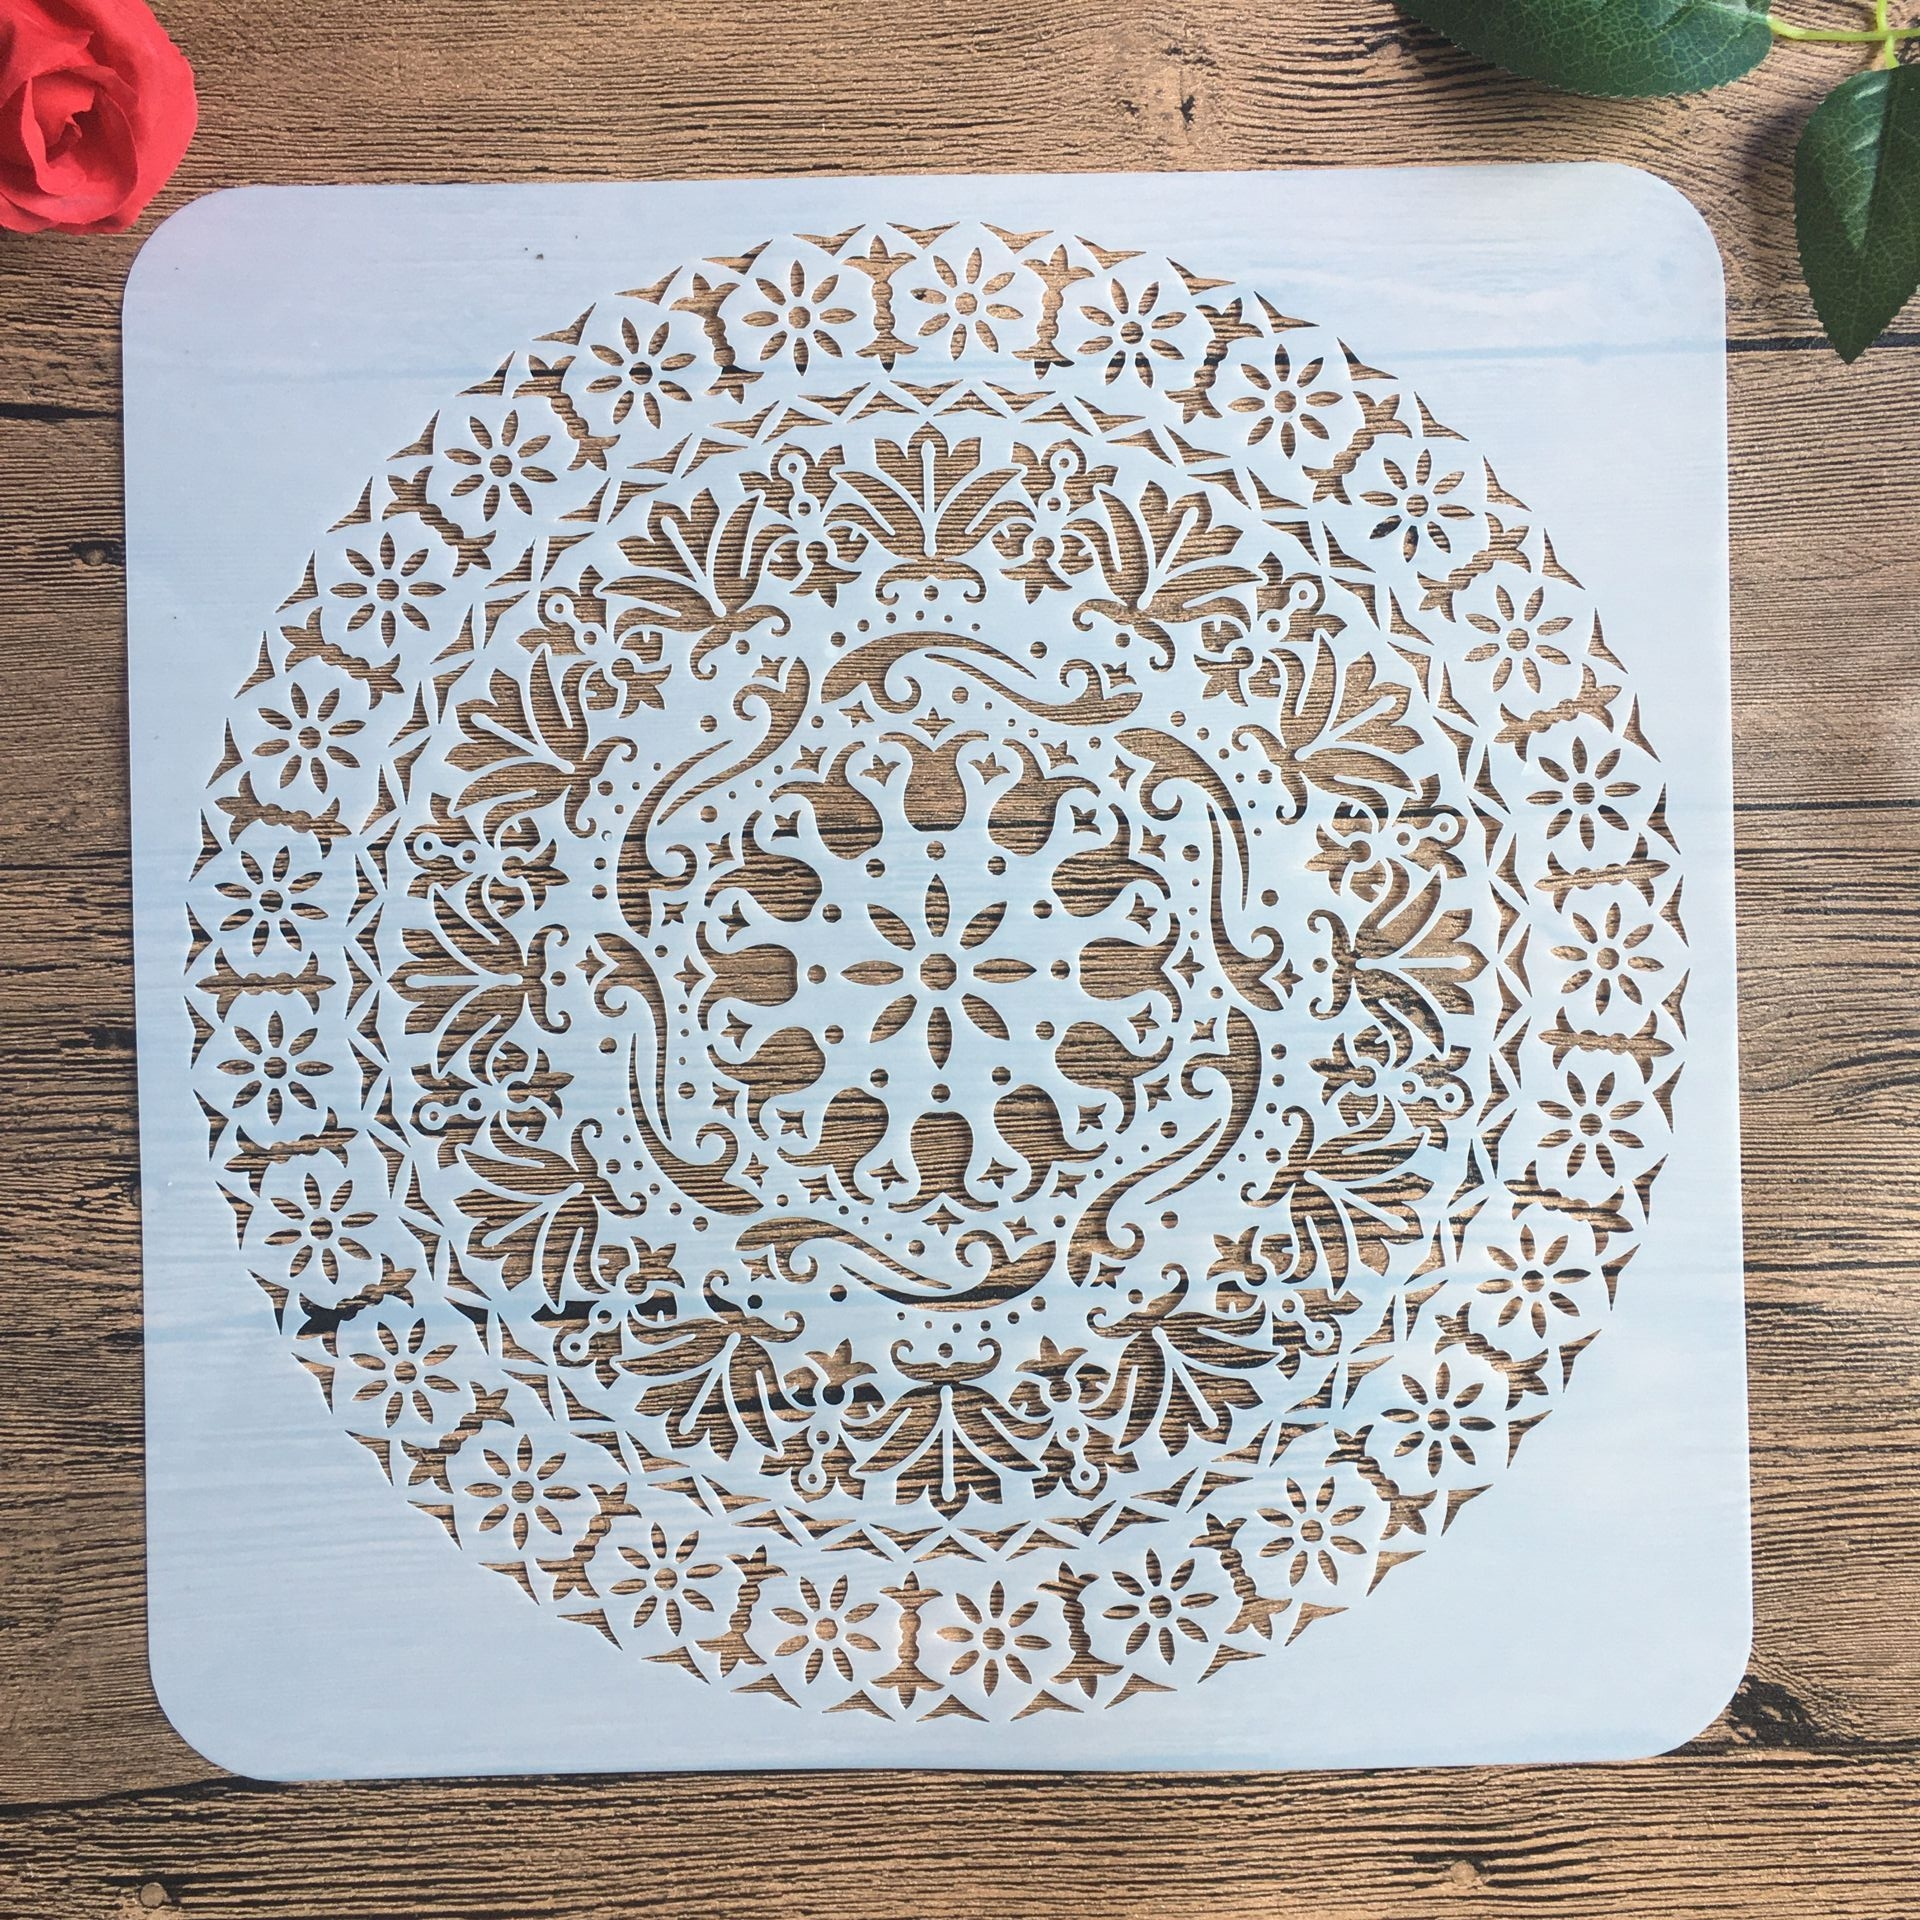 30 * 30 Cm Large Round Flower Mandala Diy Stencil Painting Scrapbook Coloring Engraving Album Decoration Template Stencil -d